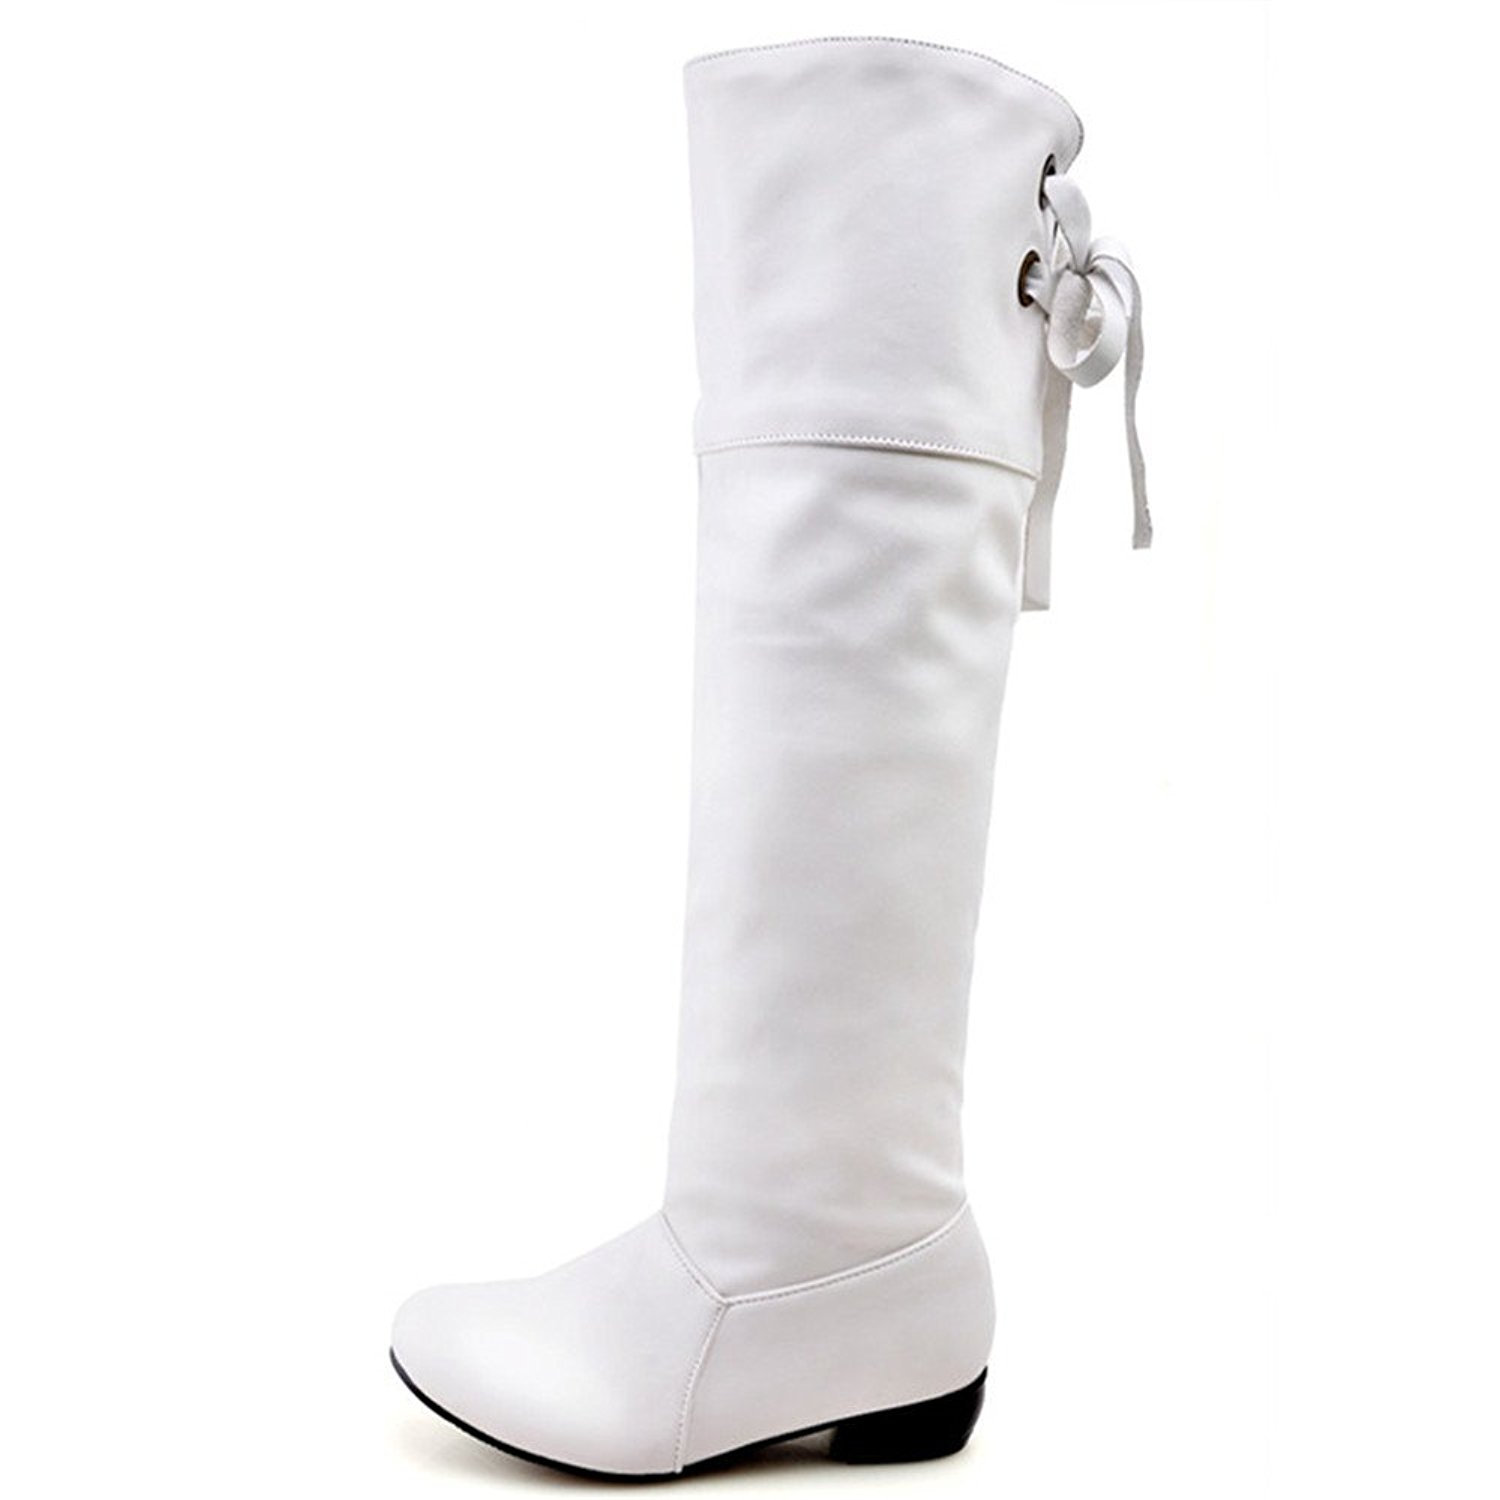 86b08e085a9 Get Quotations · Fashion Heel Women's Chunky Heel Round Toe Lace Up Knee  High Riding Boot